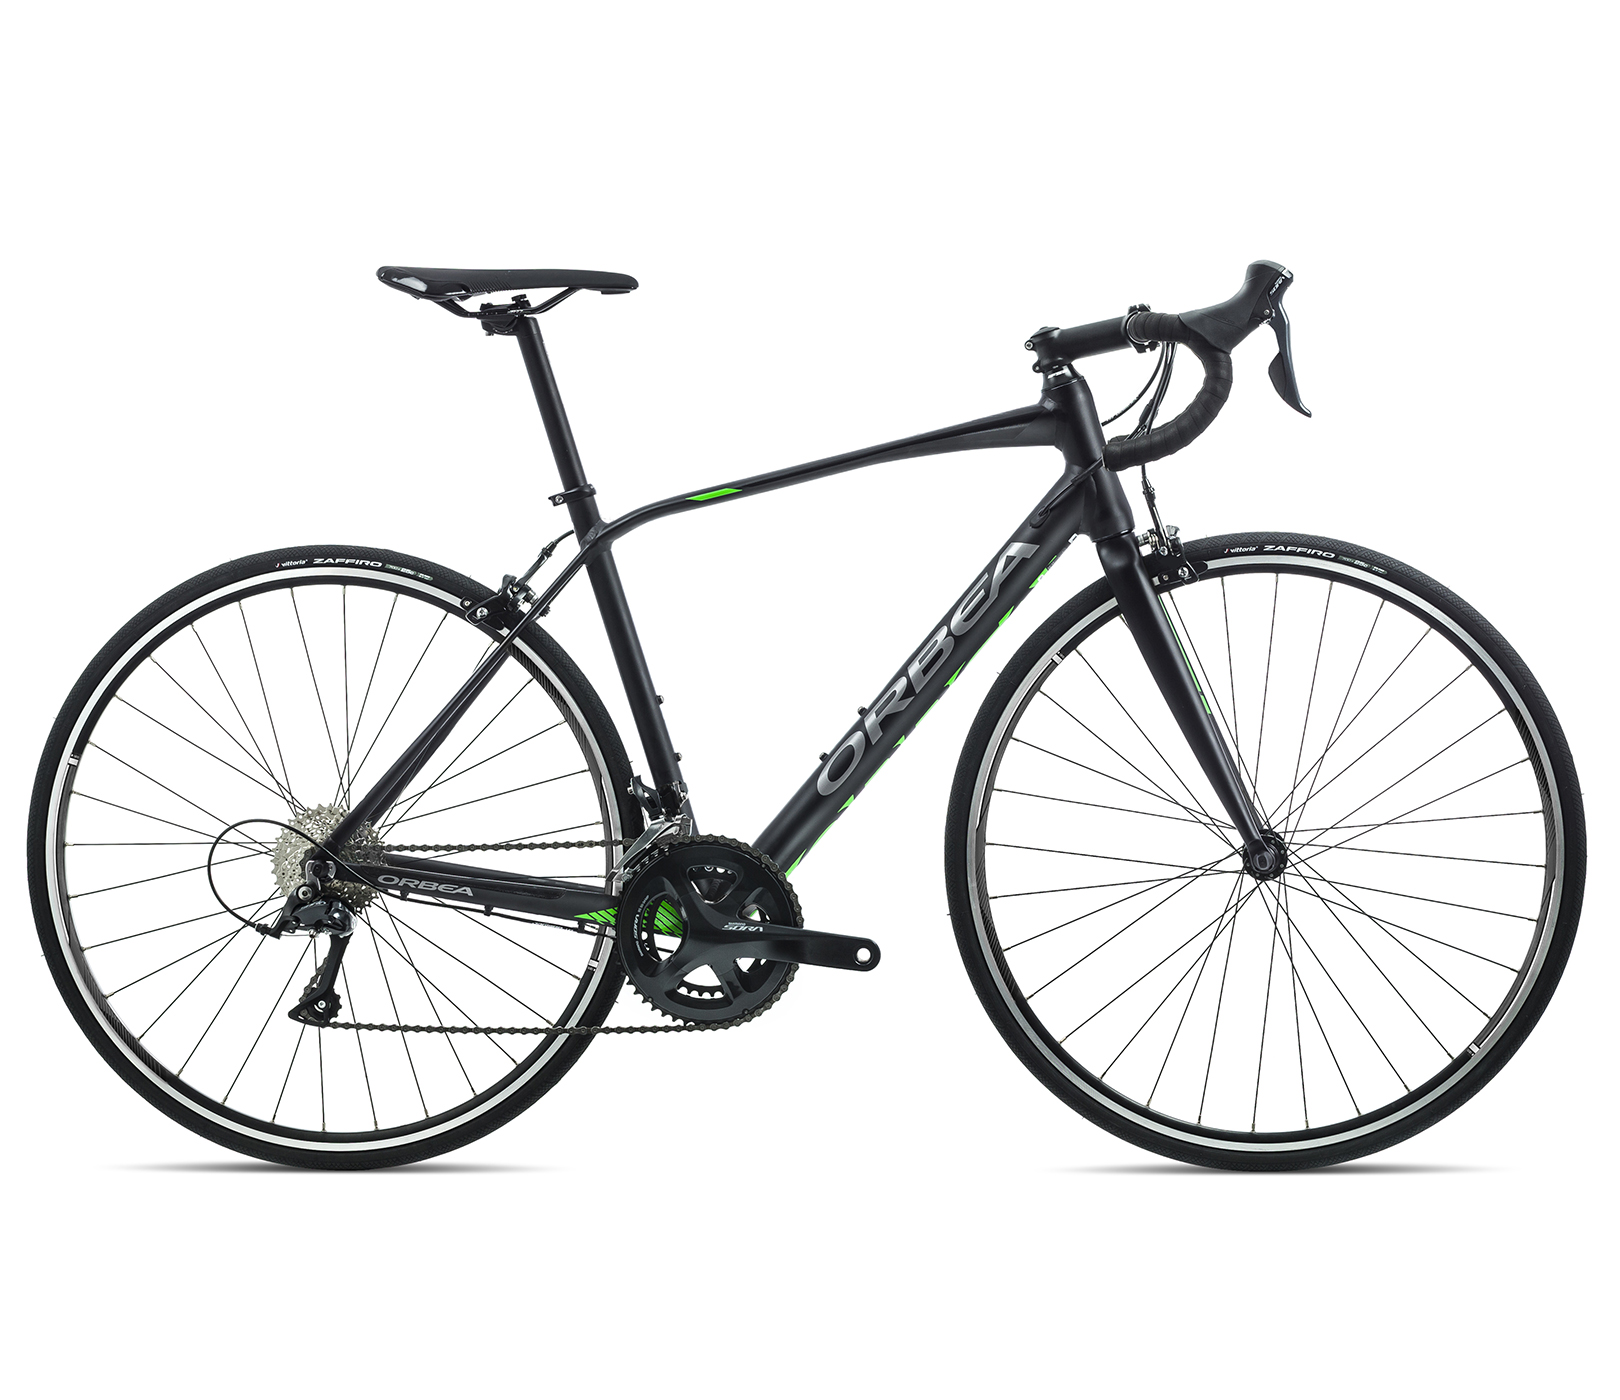 Orbea Avant road bike